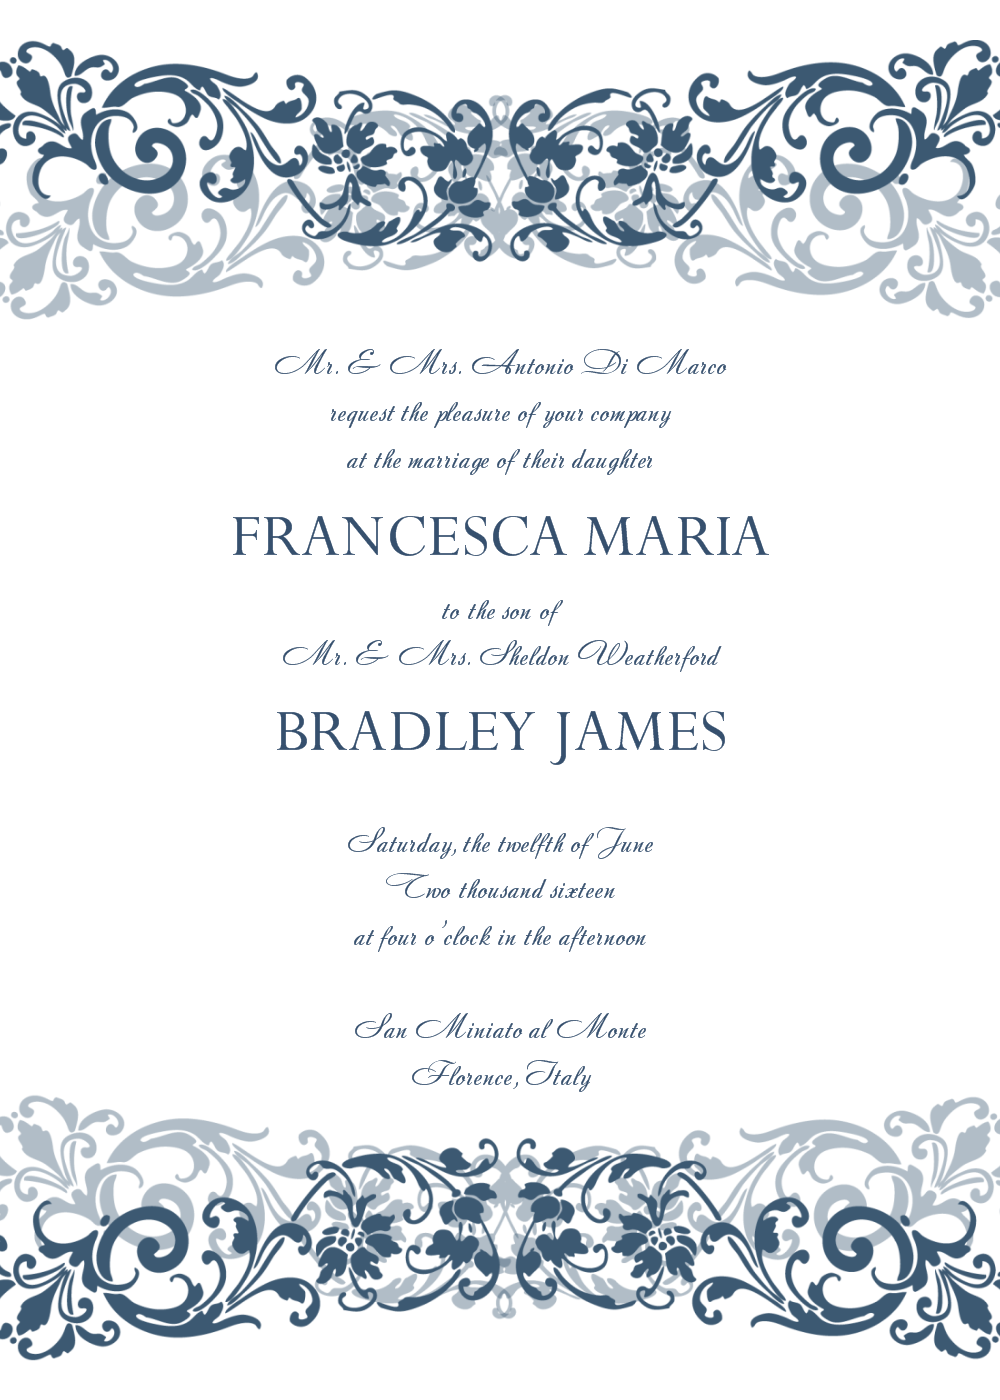 30 Free Wedding Invitations Templates – Free Invitation Design Templates